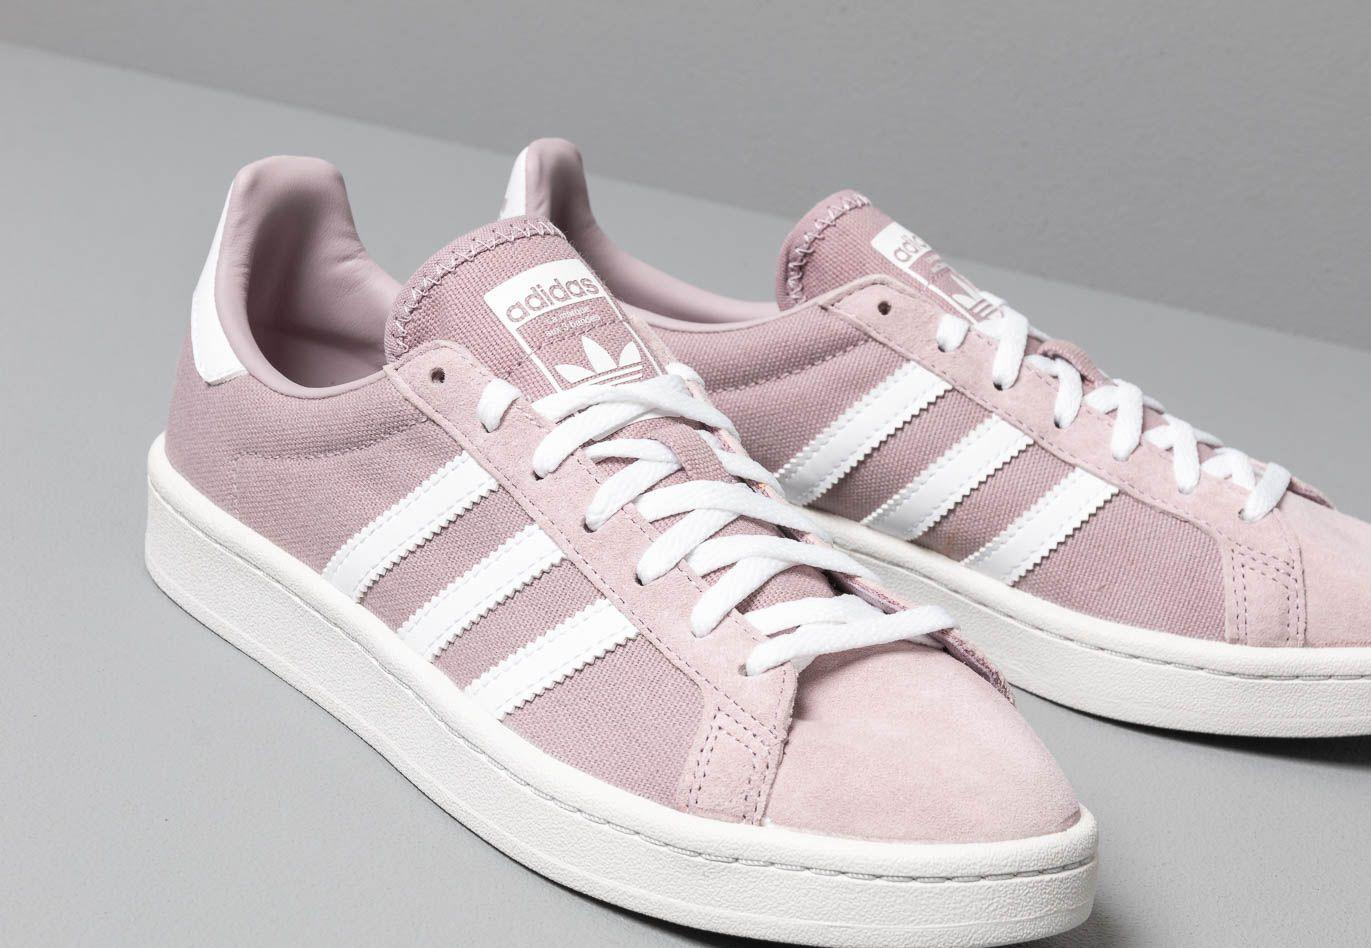 separation shoes a92b2 125e0 Adidas Originals - Adidas Campus W Soft Vision  Ftw White  Crystal White -  Lyst. View fullscreen